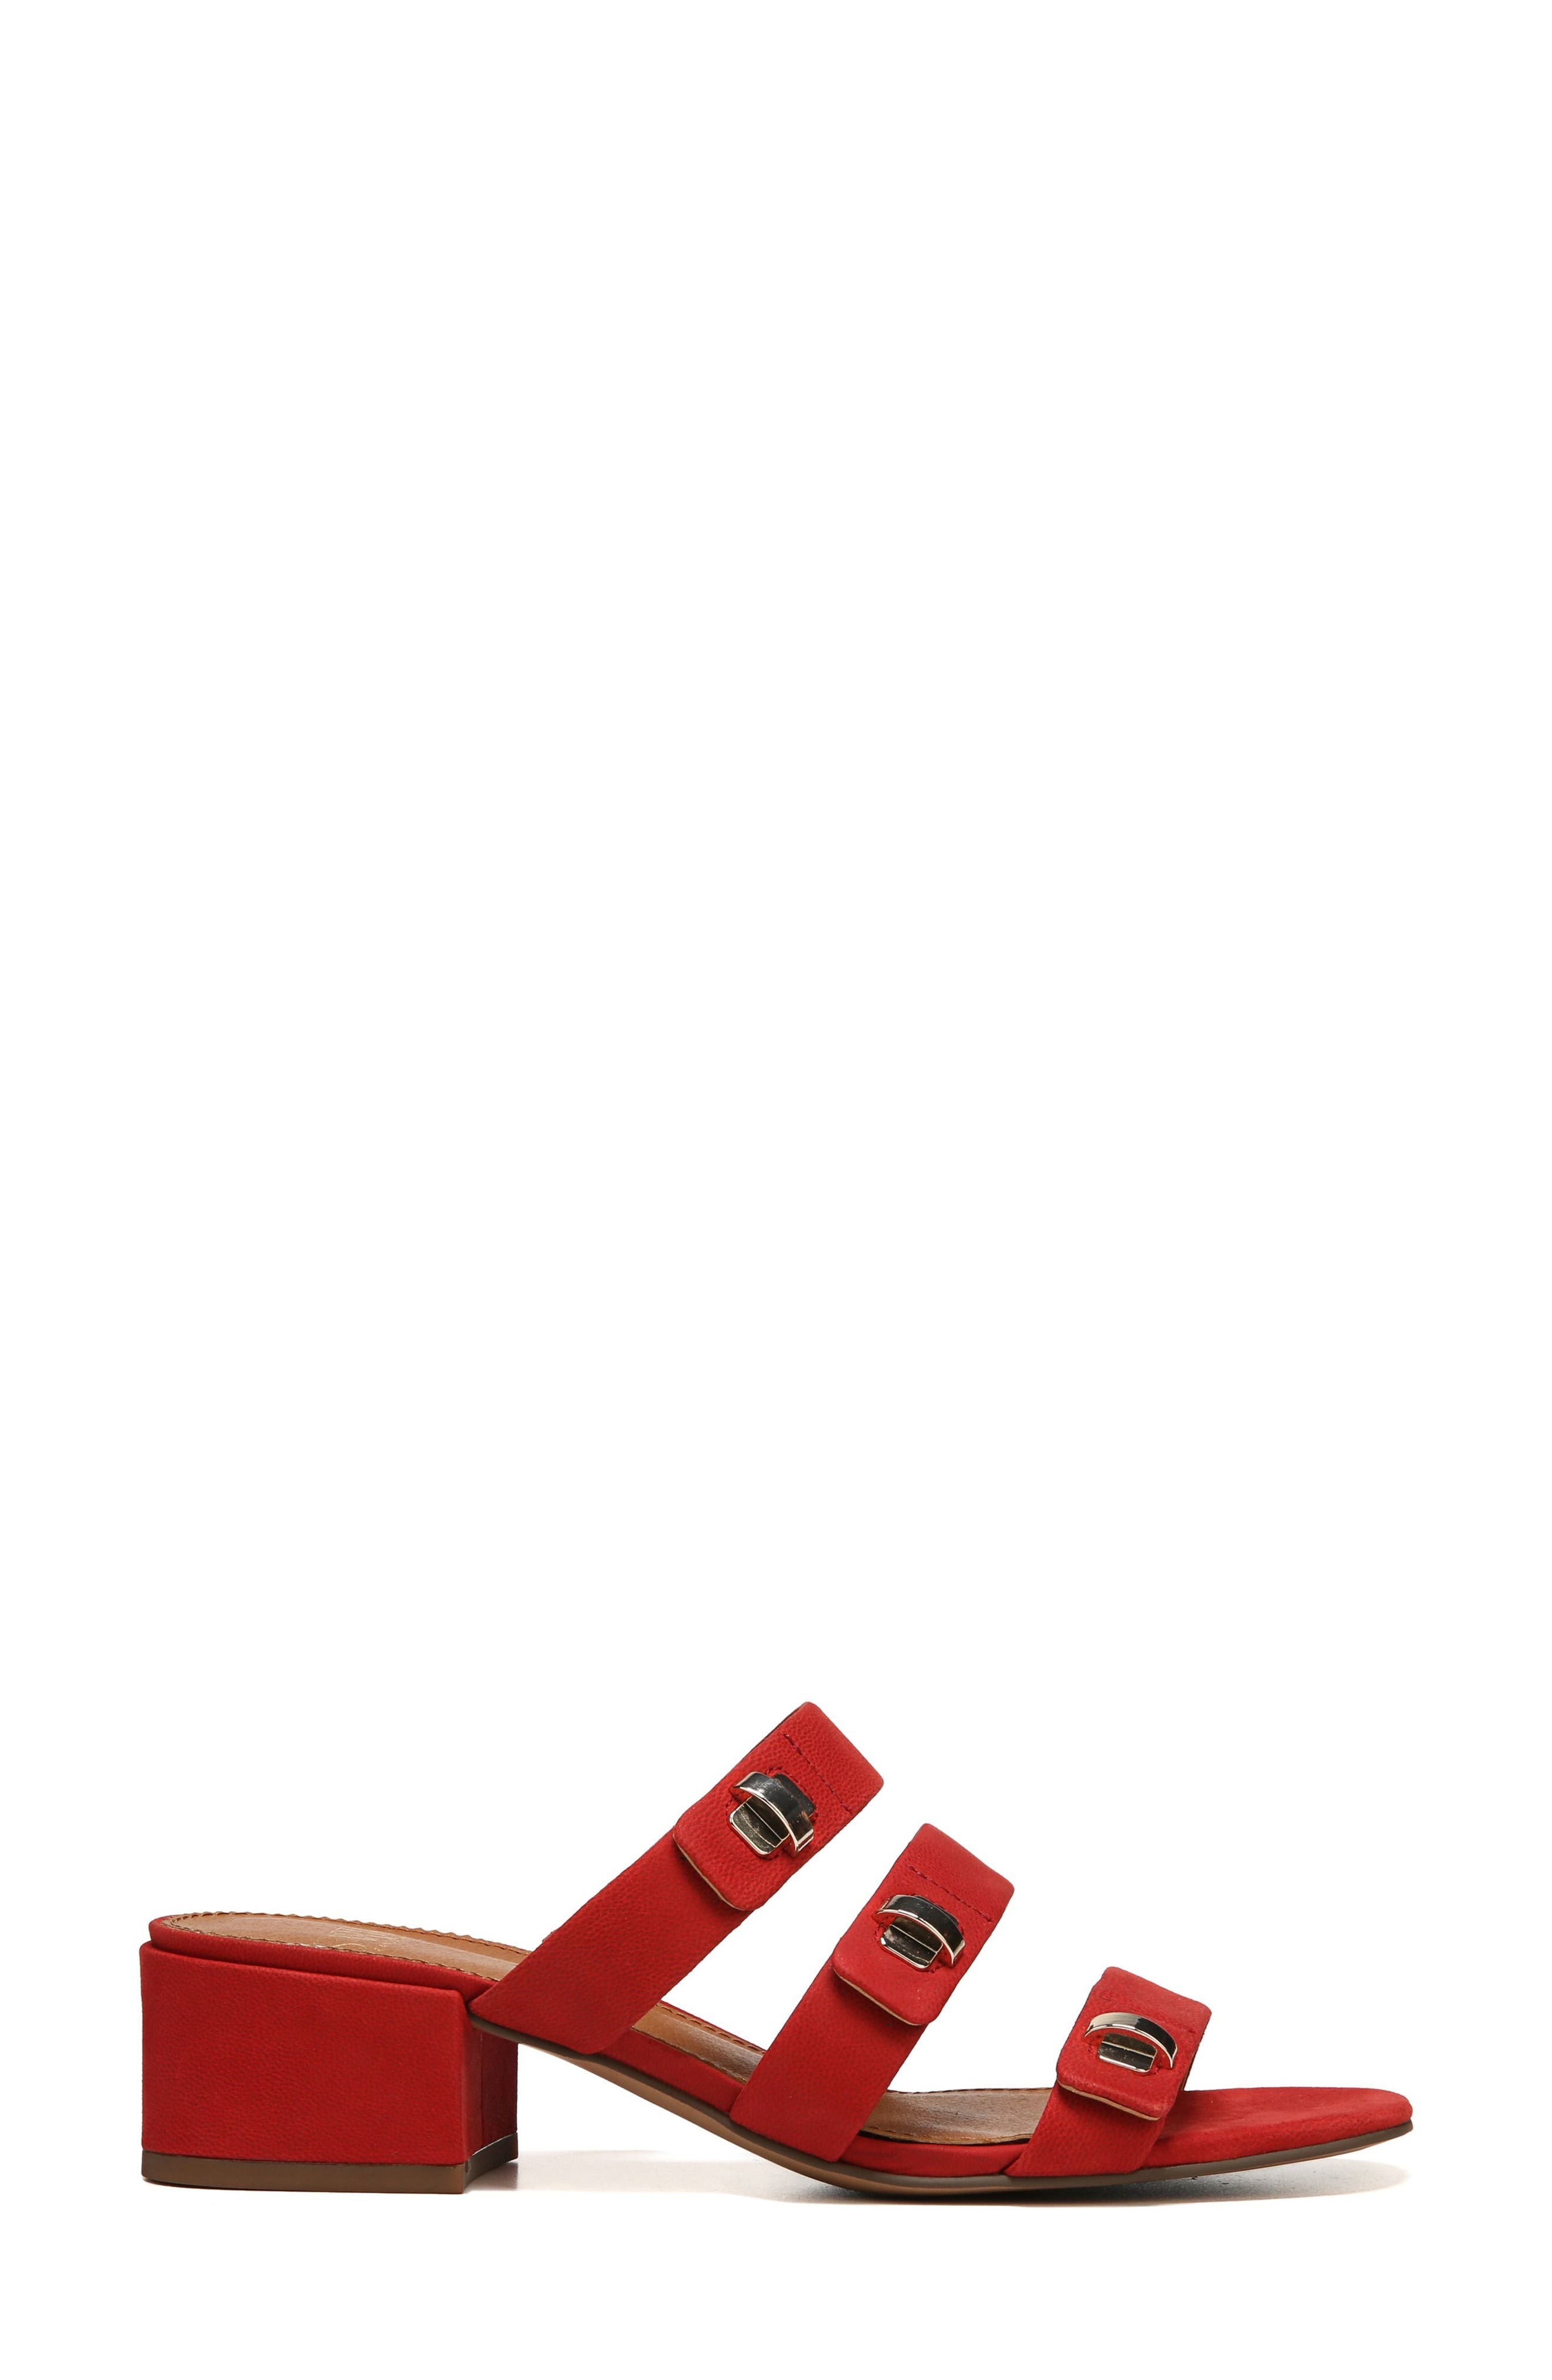 Arabesque Strappy Slide Sandal,                             Alternate thumbnail 3, color,                             Pop Red Nubuck